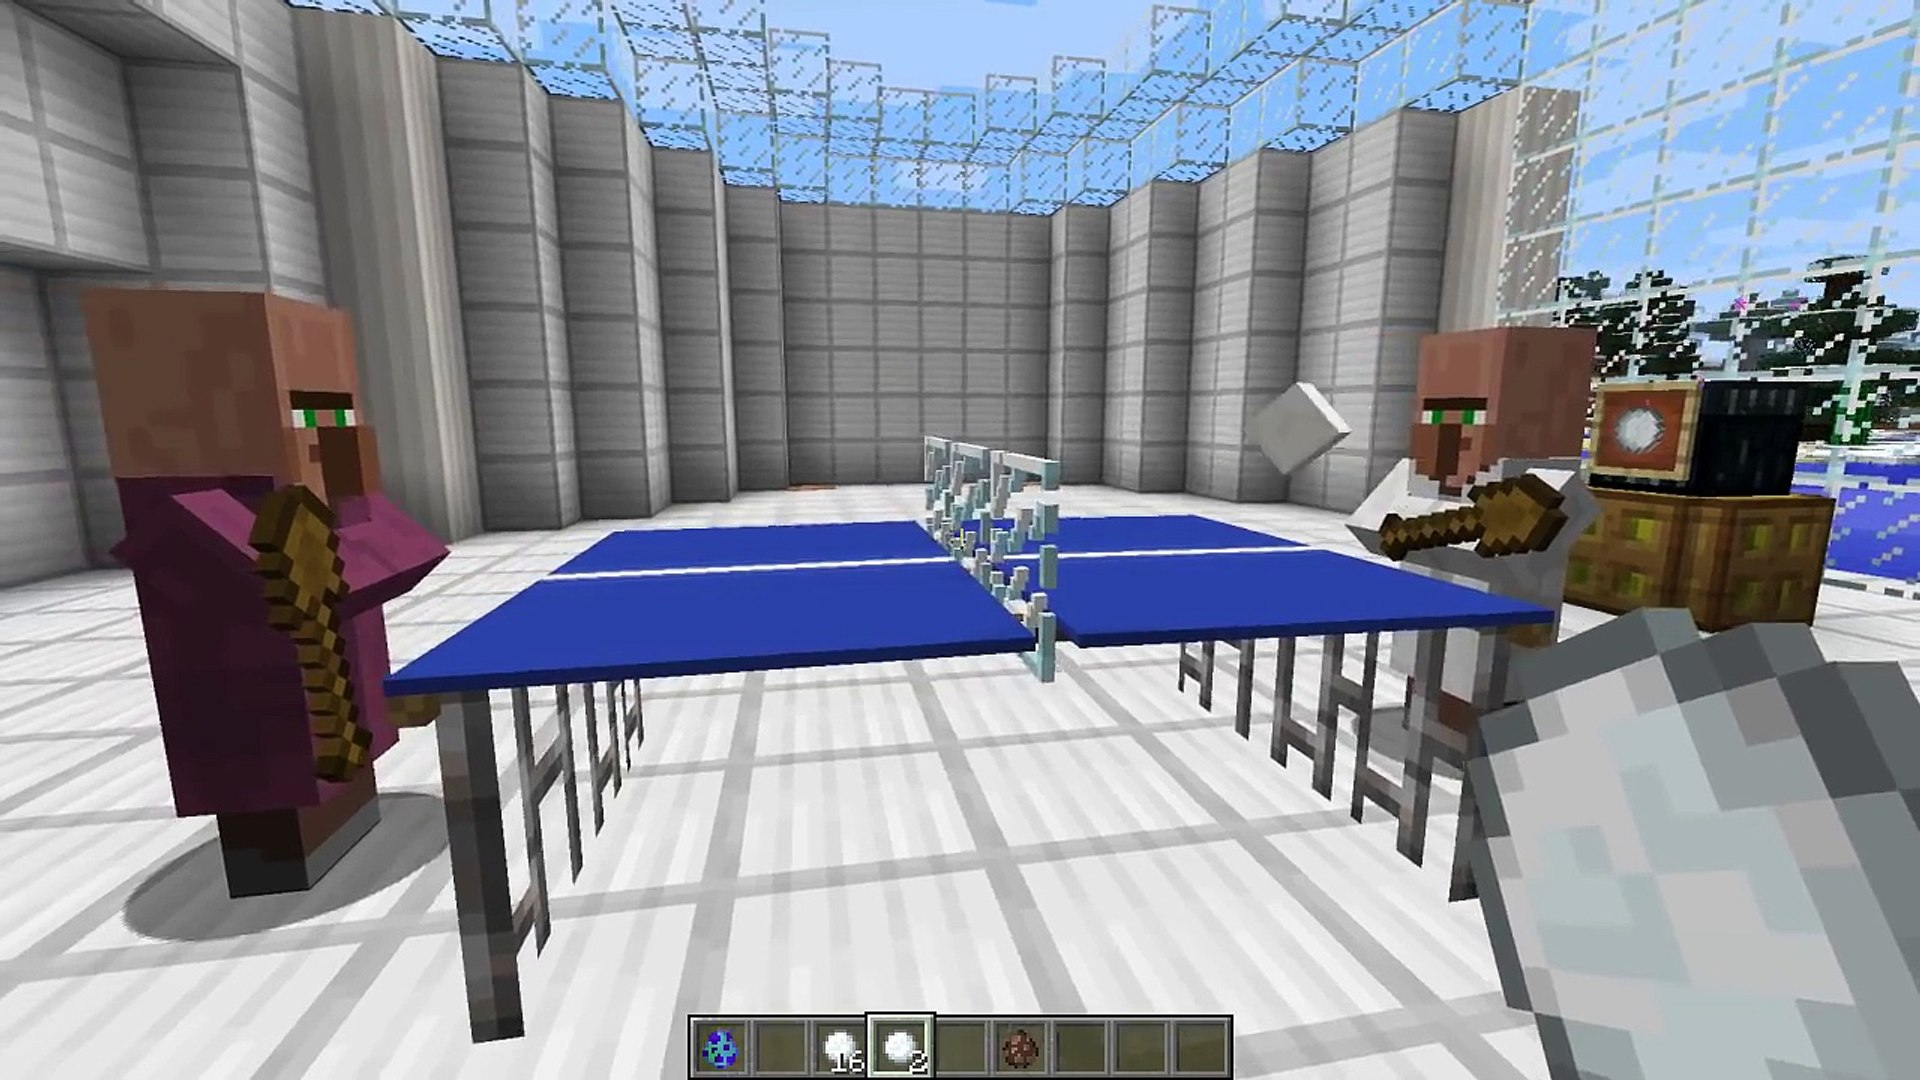 Minecraft - Table Tennis (A.K.A. Ping Pong) in one command